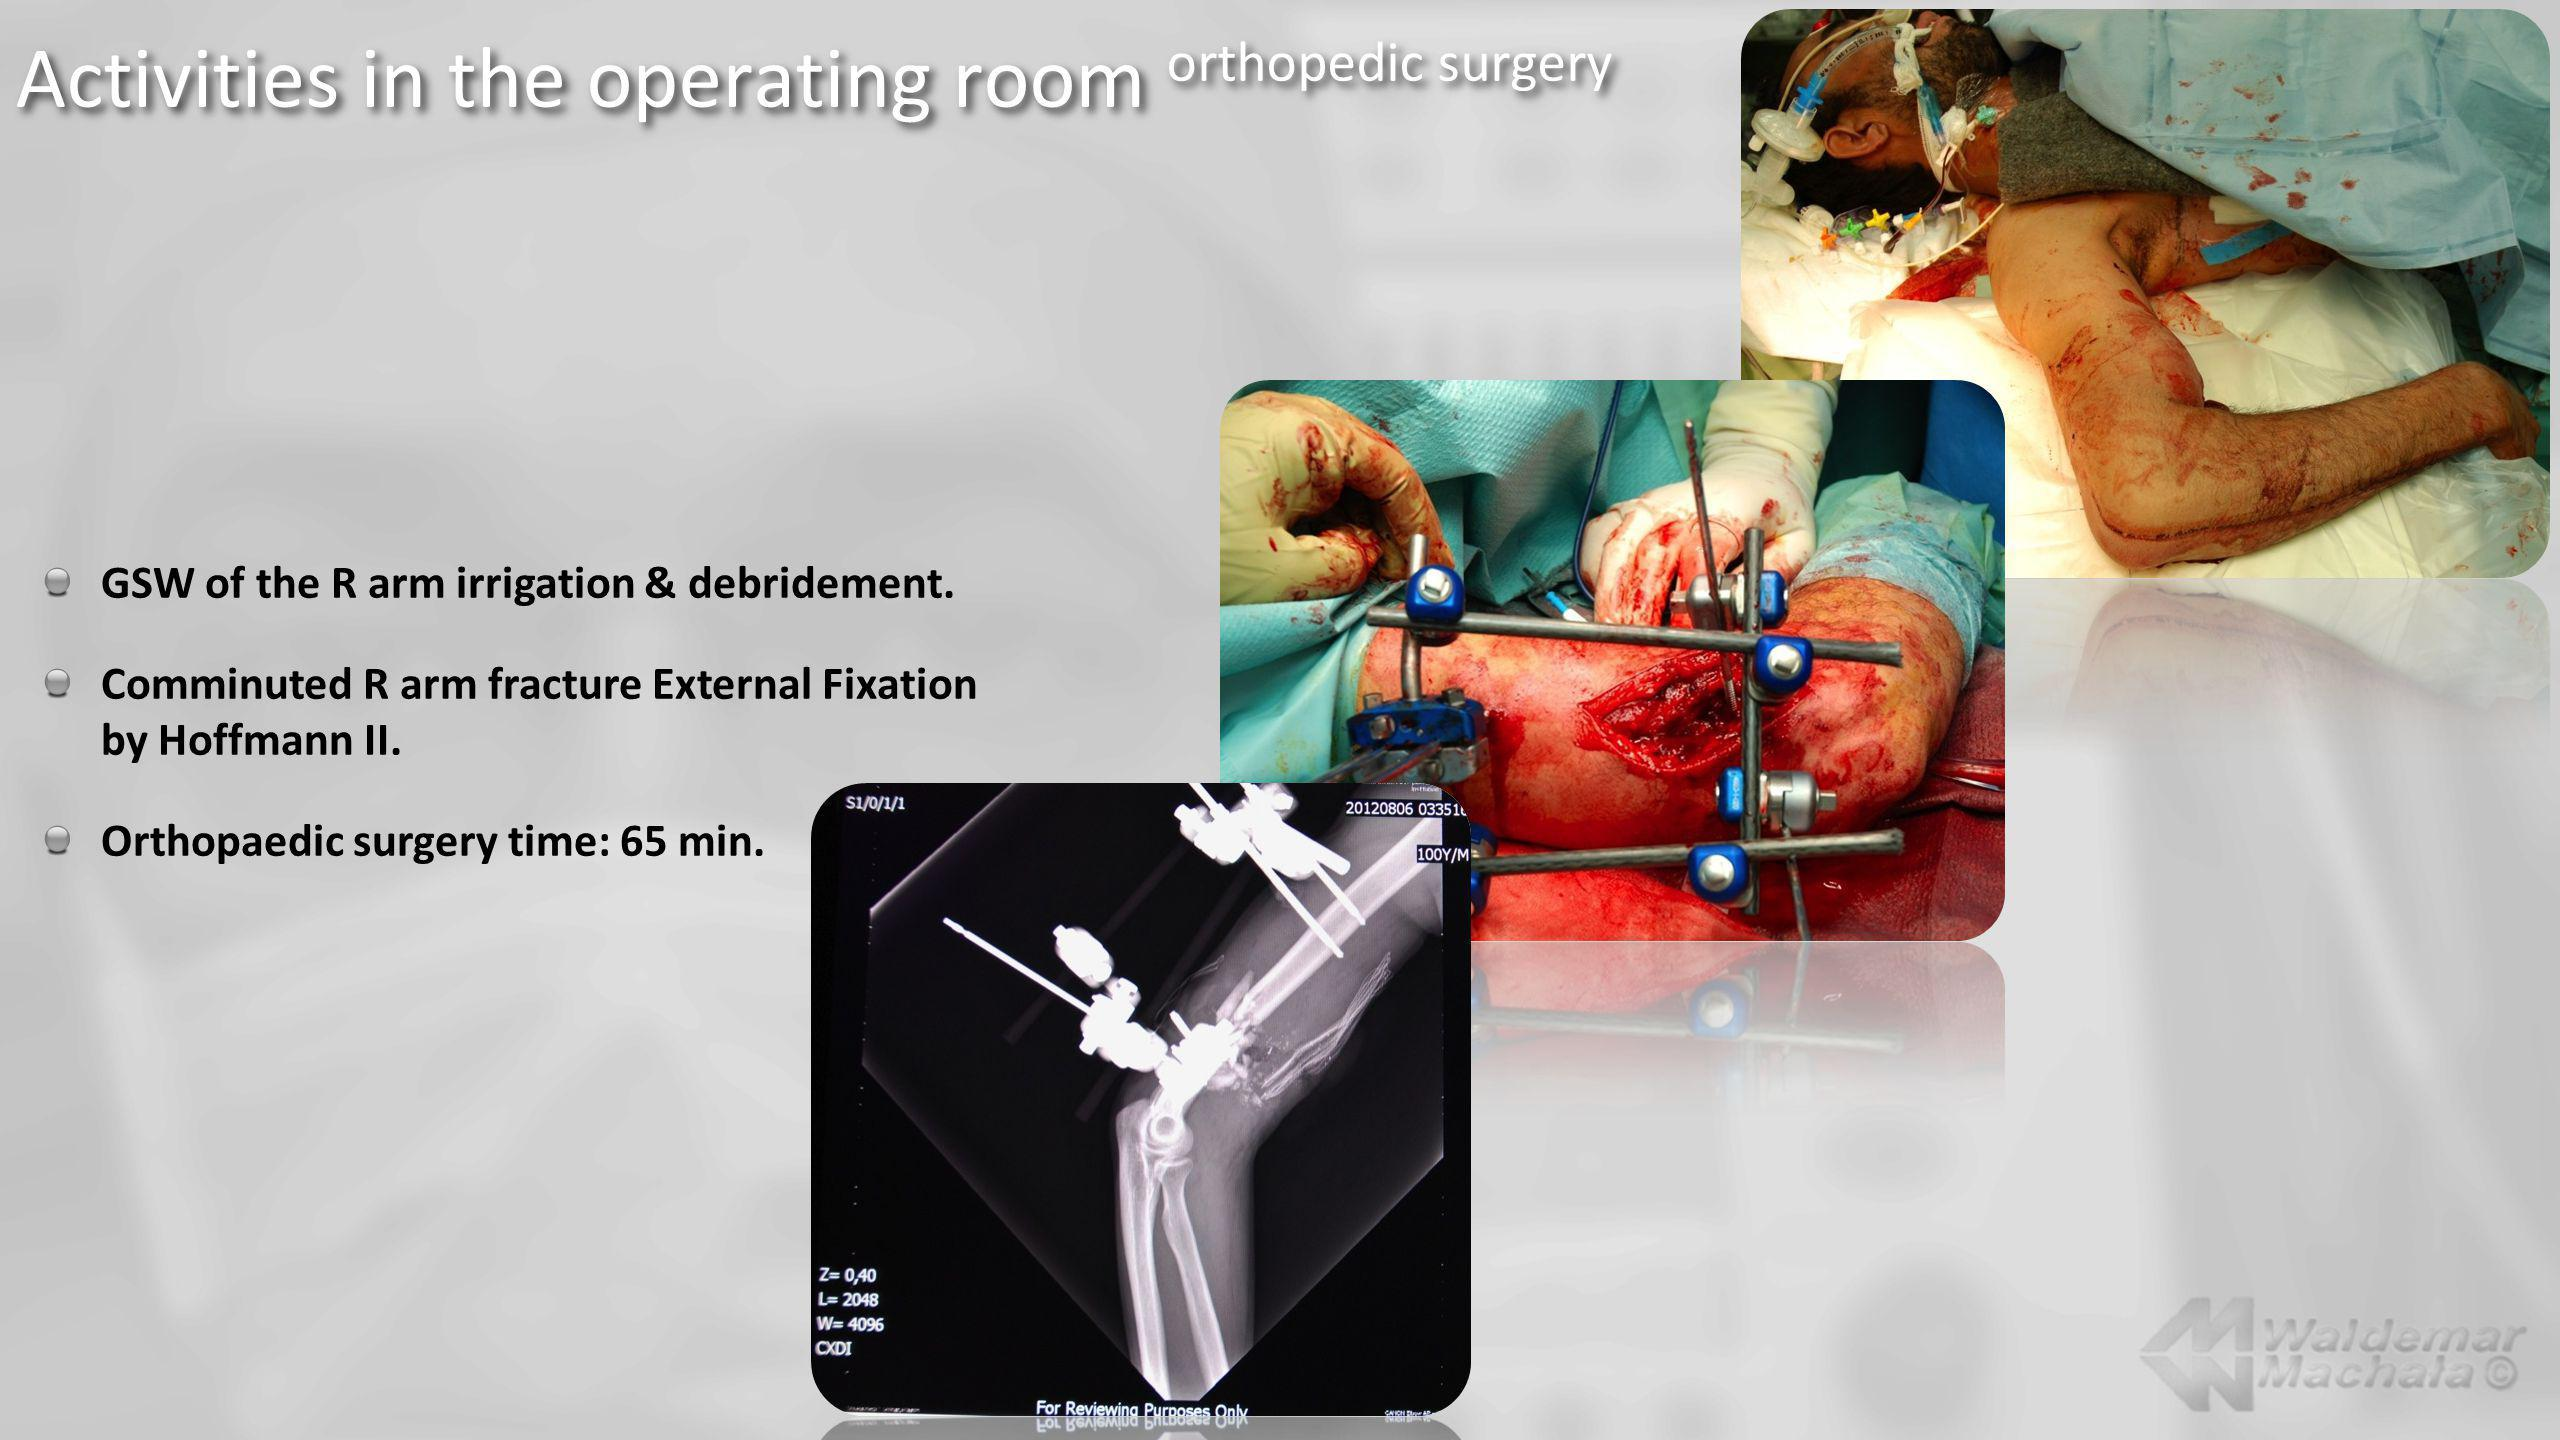 Activities in the operating room orthopedic surgery